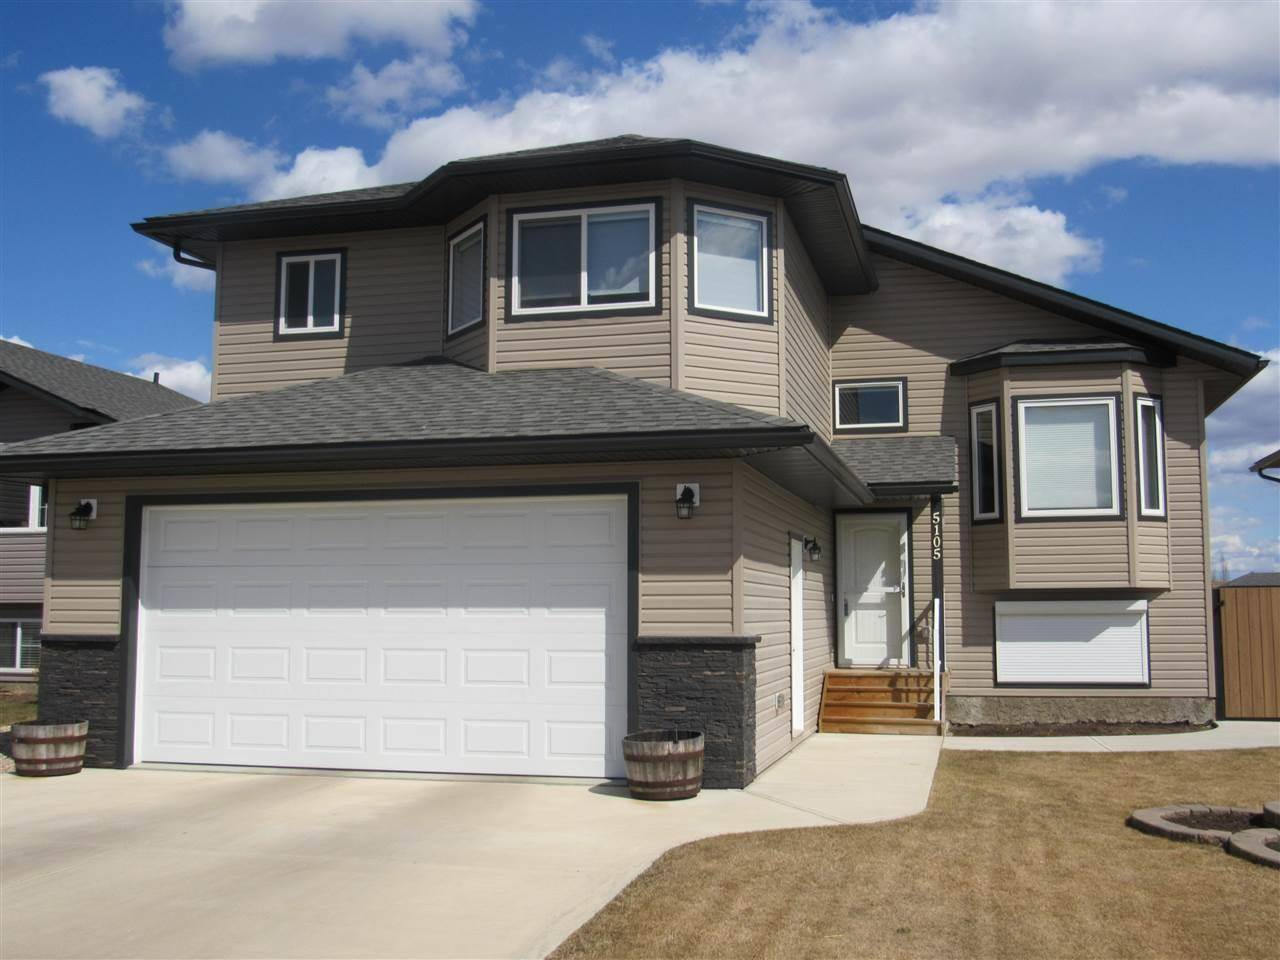 House for sale at 5105 61 St Barrhead Alberta - MLS: E4183693